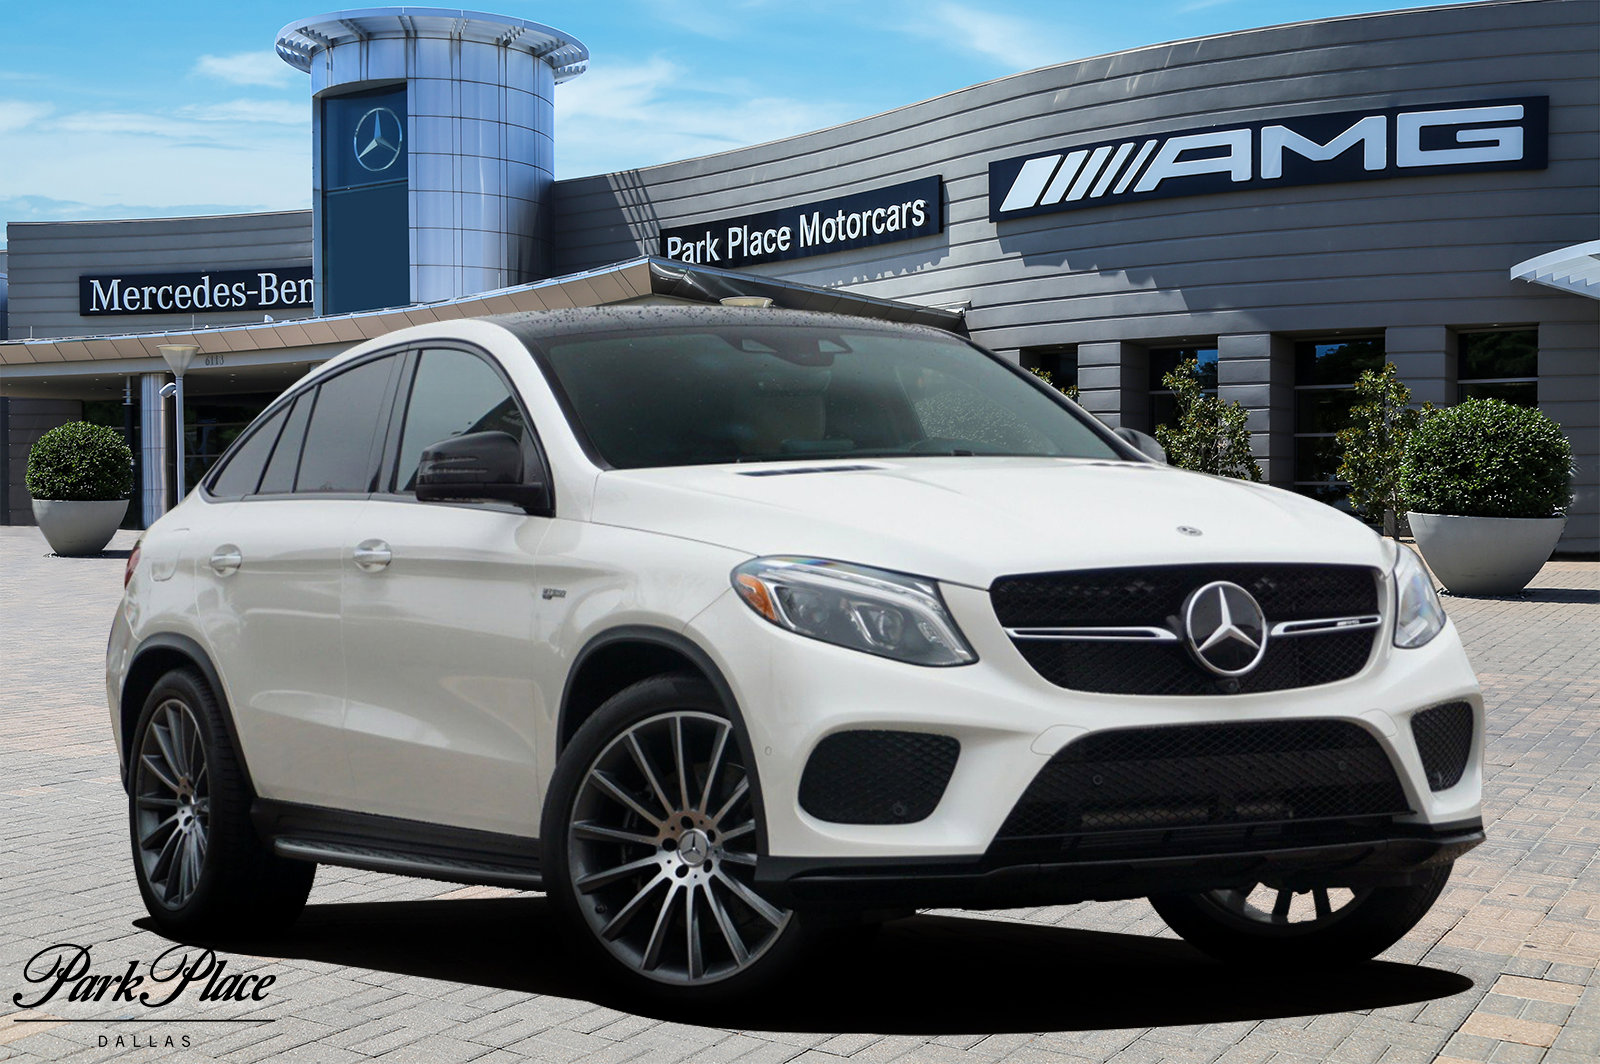 2019 Mercedes-Benz GLE 43 AMG 4MATIC Coupe image